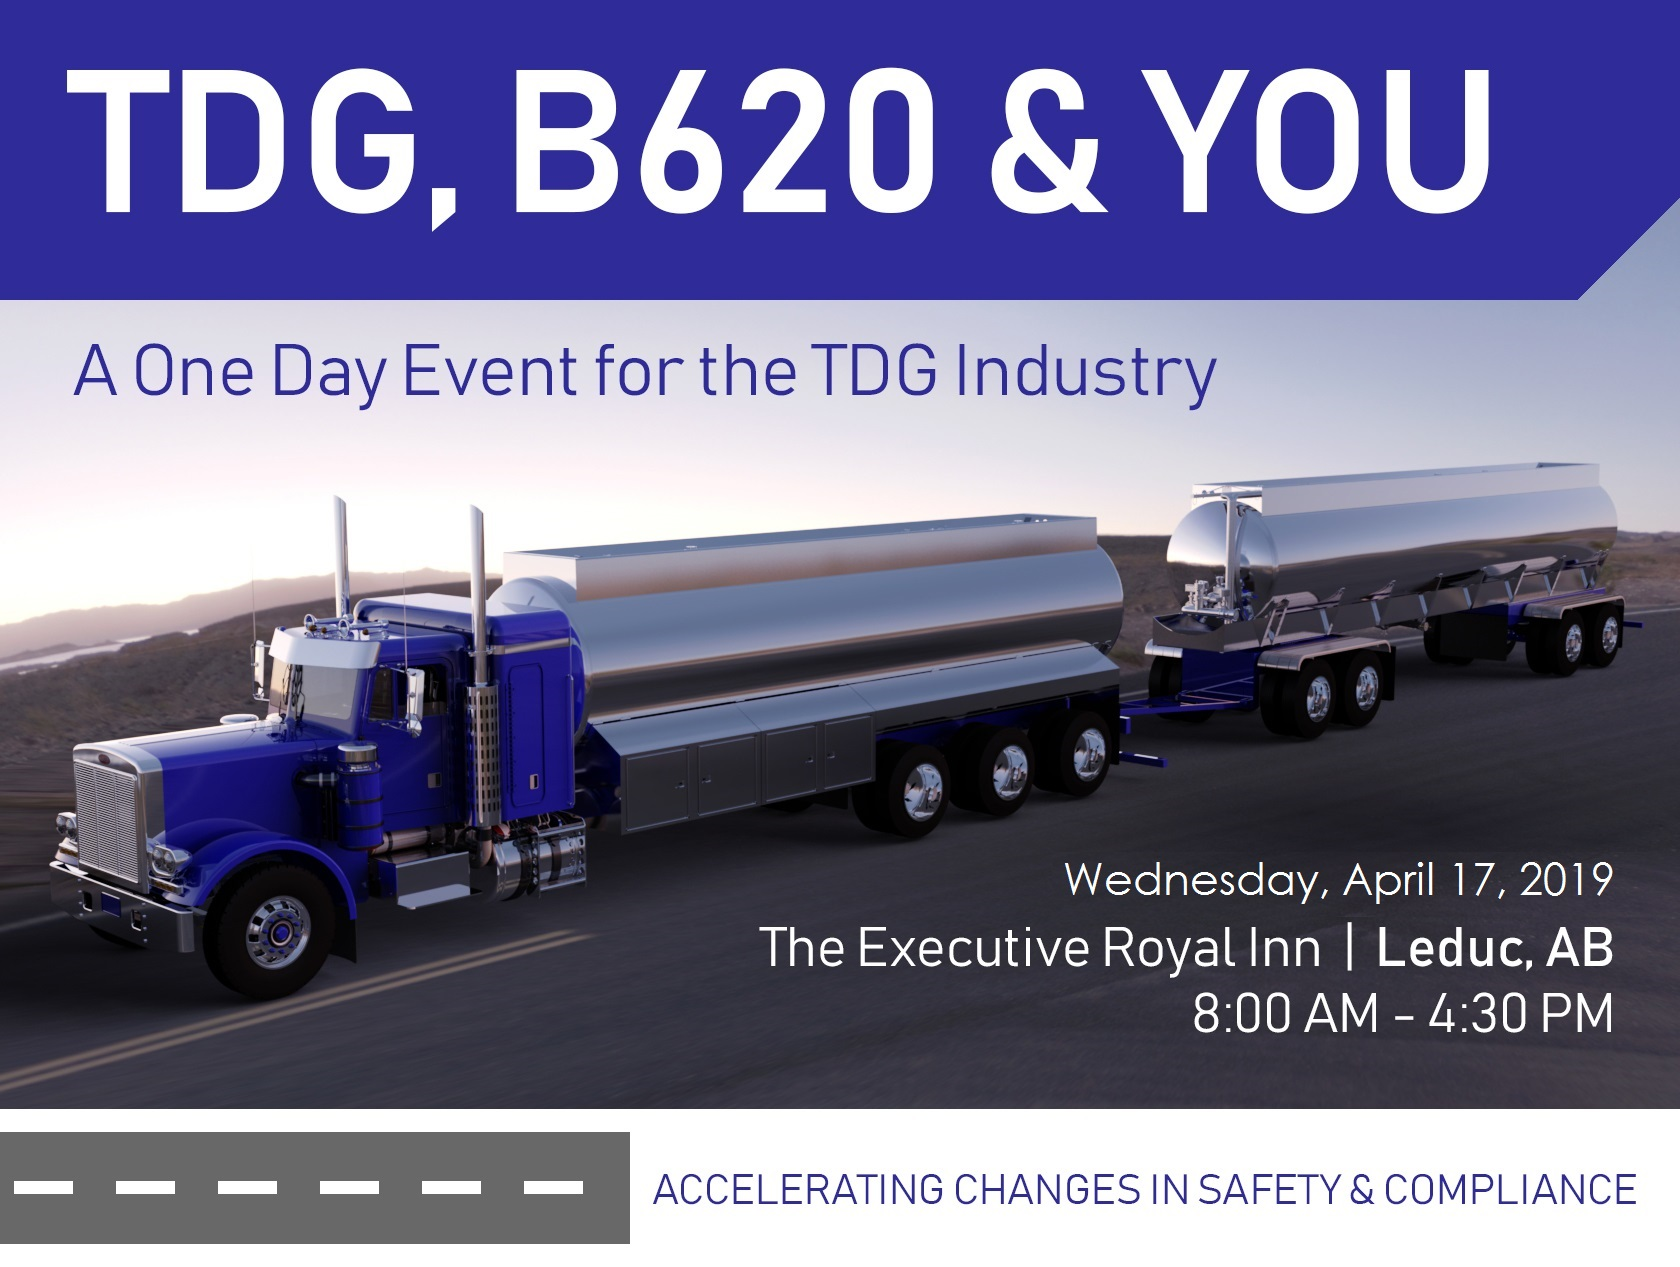 TDG, B620 & You event invitation